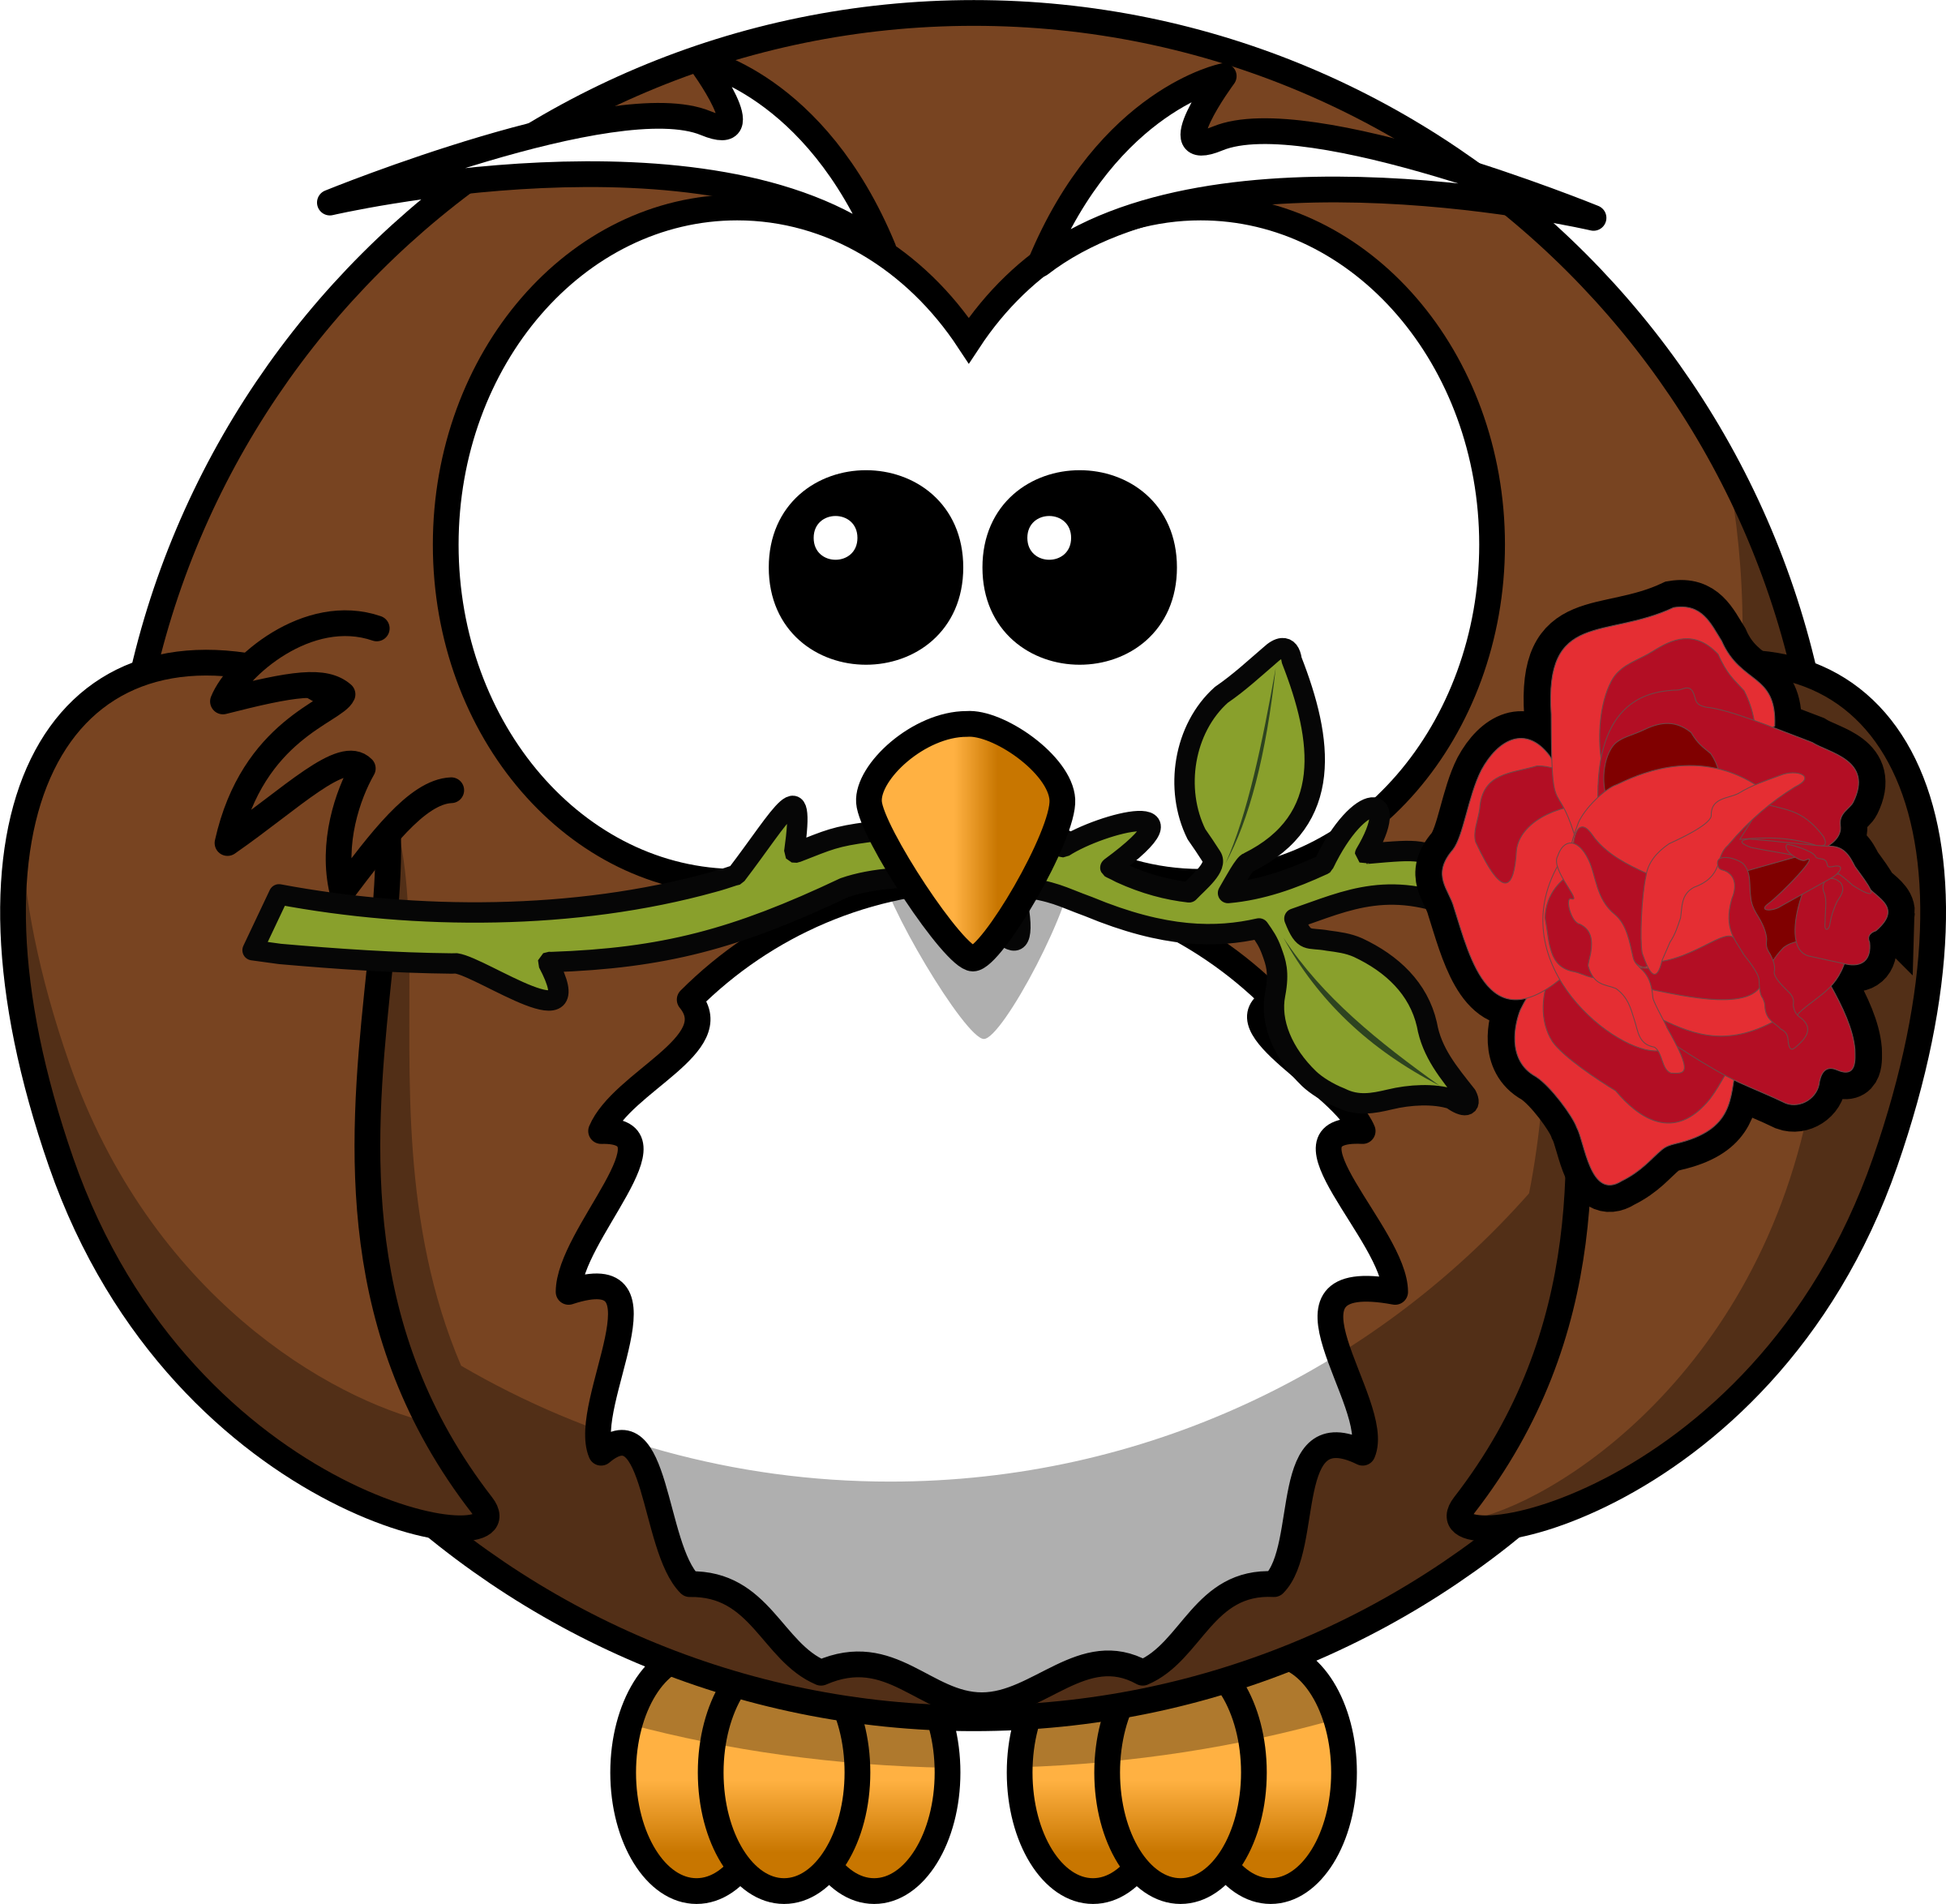 Rose clipart animated. Cartoon pictures owl with